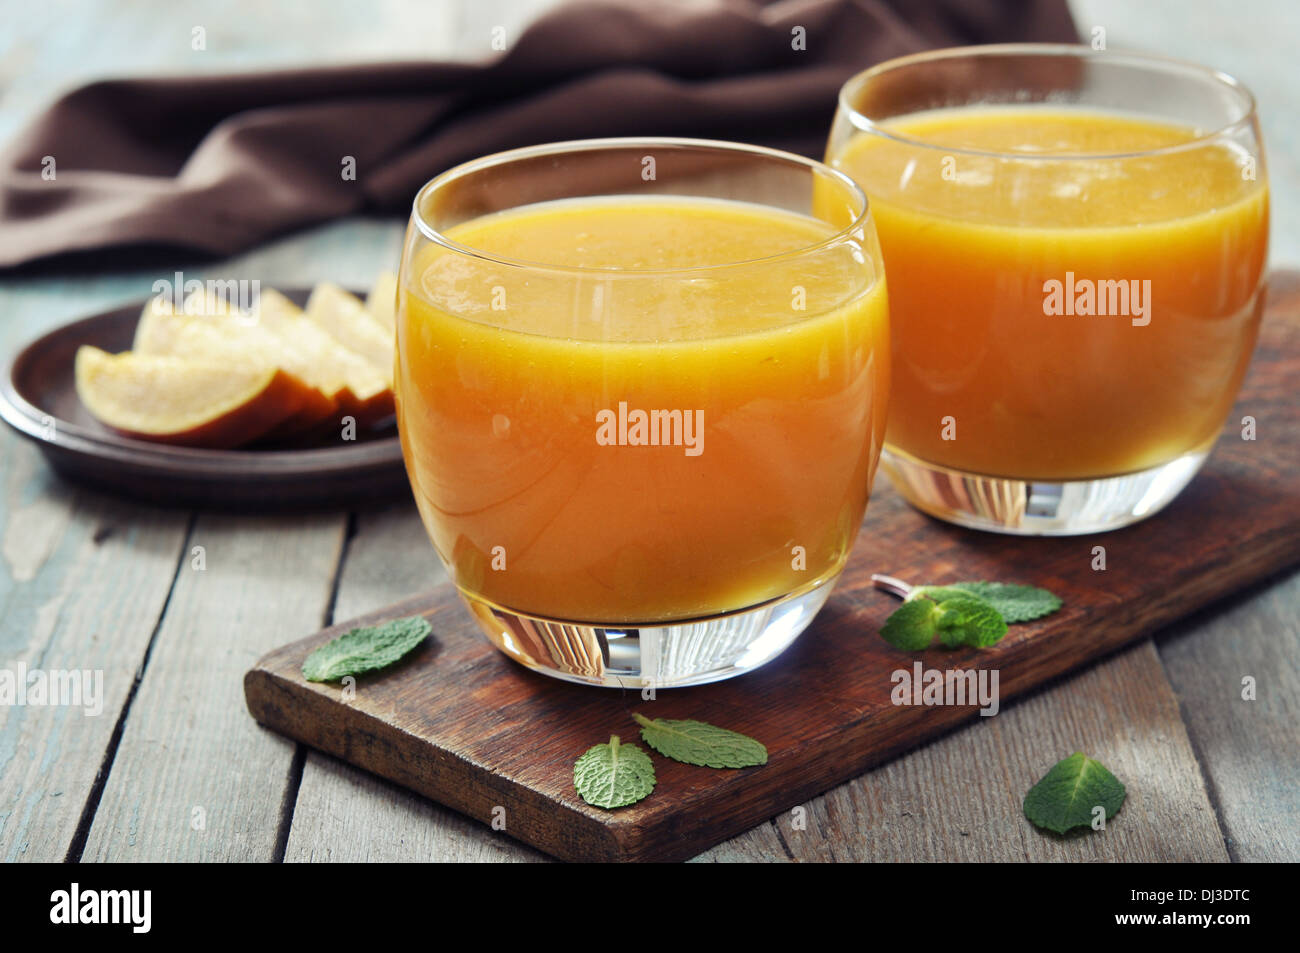 Mango smoothie in glass with mint on wooden background - Stock Image